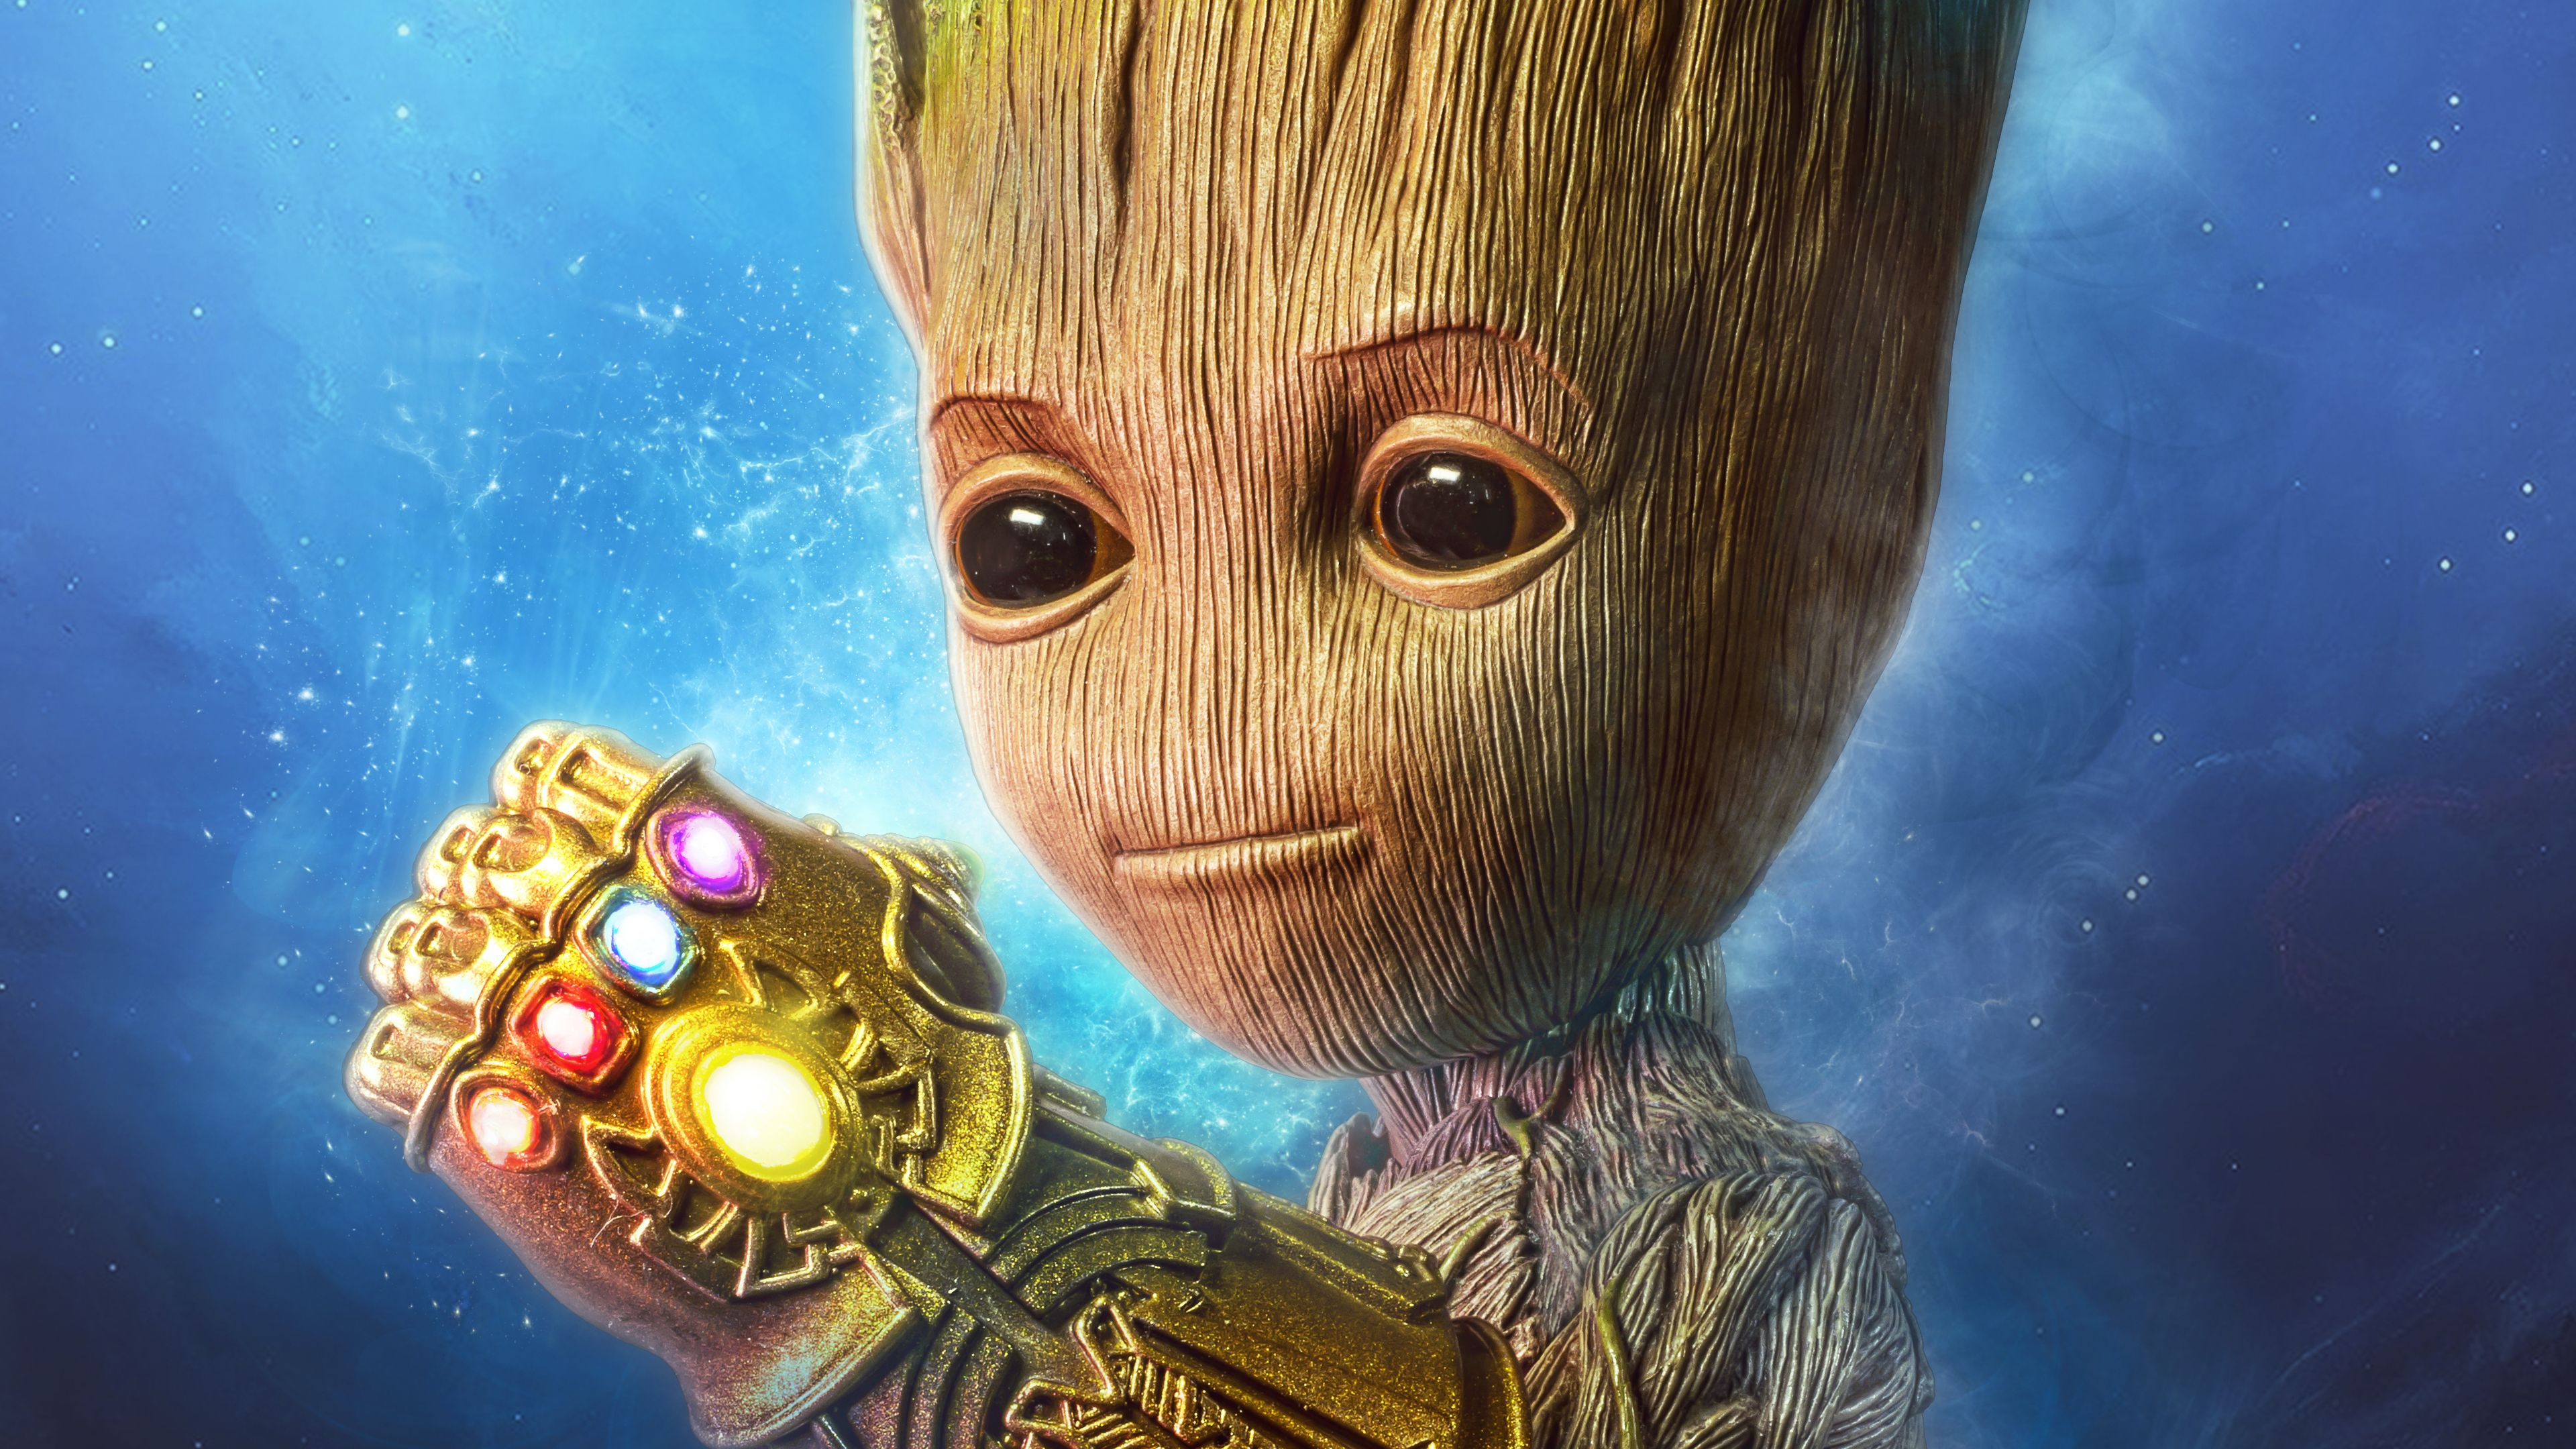 Baby Groot Gauntlet 4k Superheroes Wallpapers, Hd